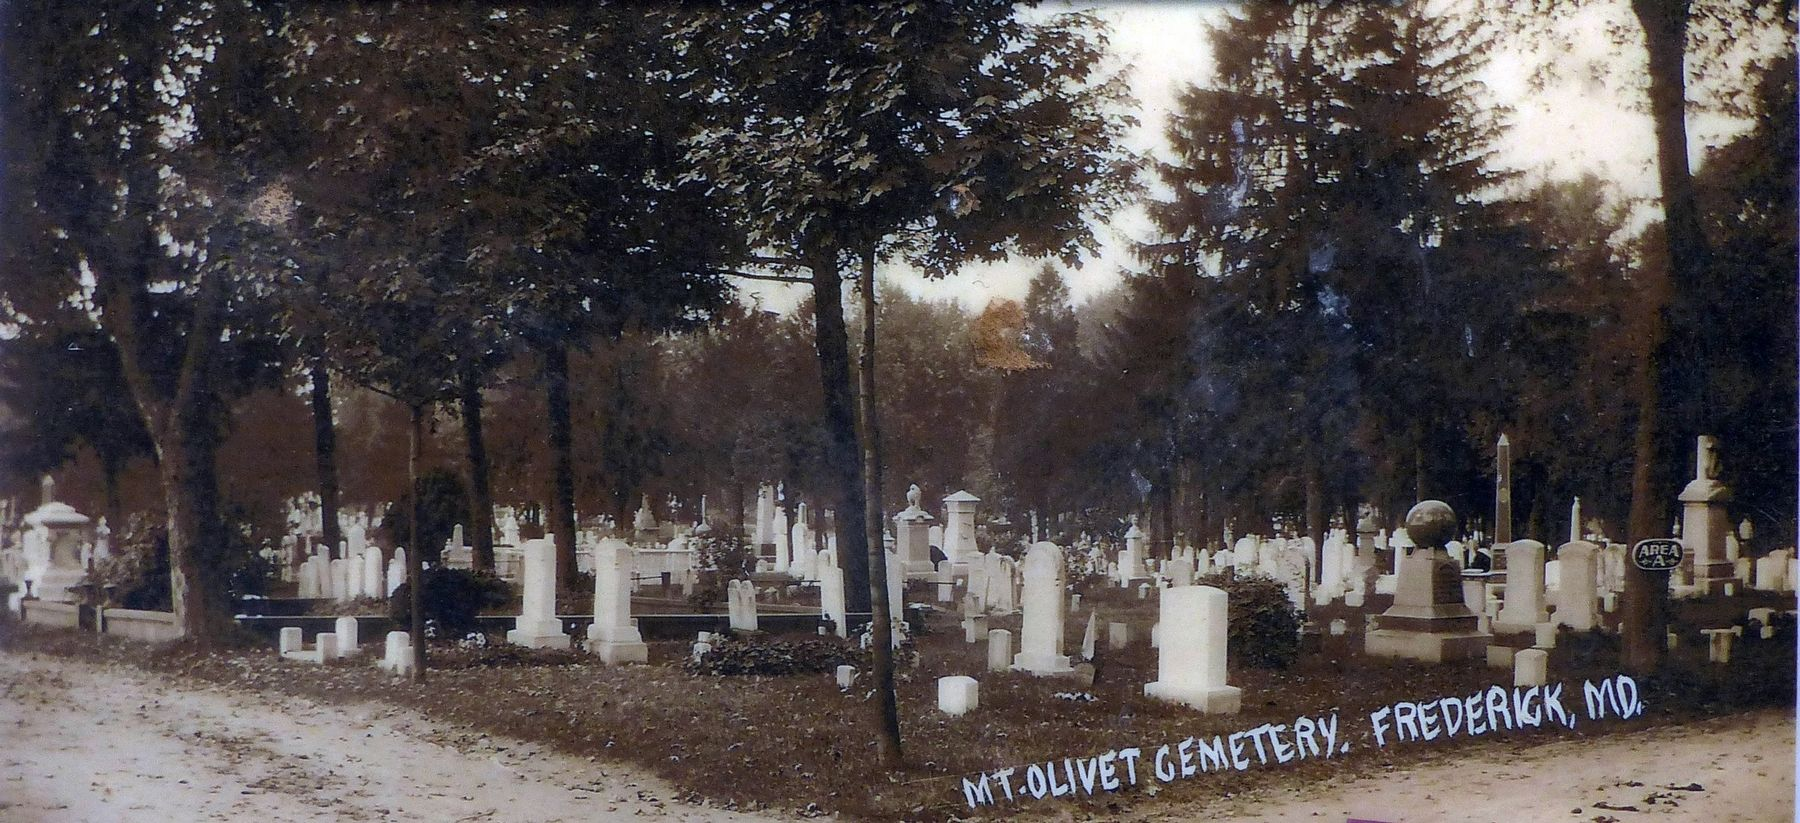 Mount Olivet Cemetery, Frederick, MD. image. Click for full size.